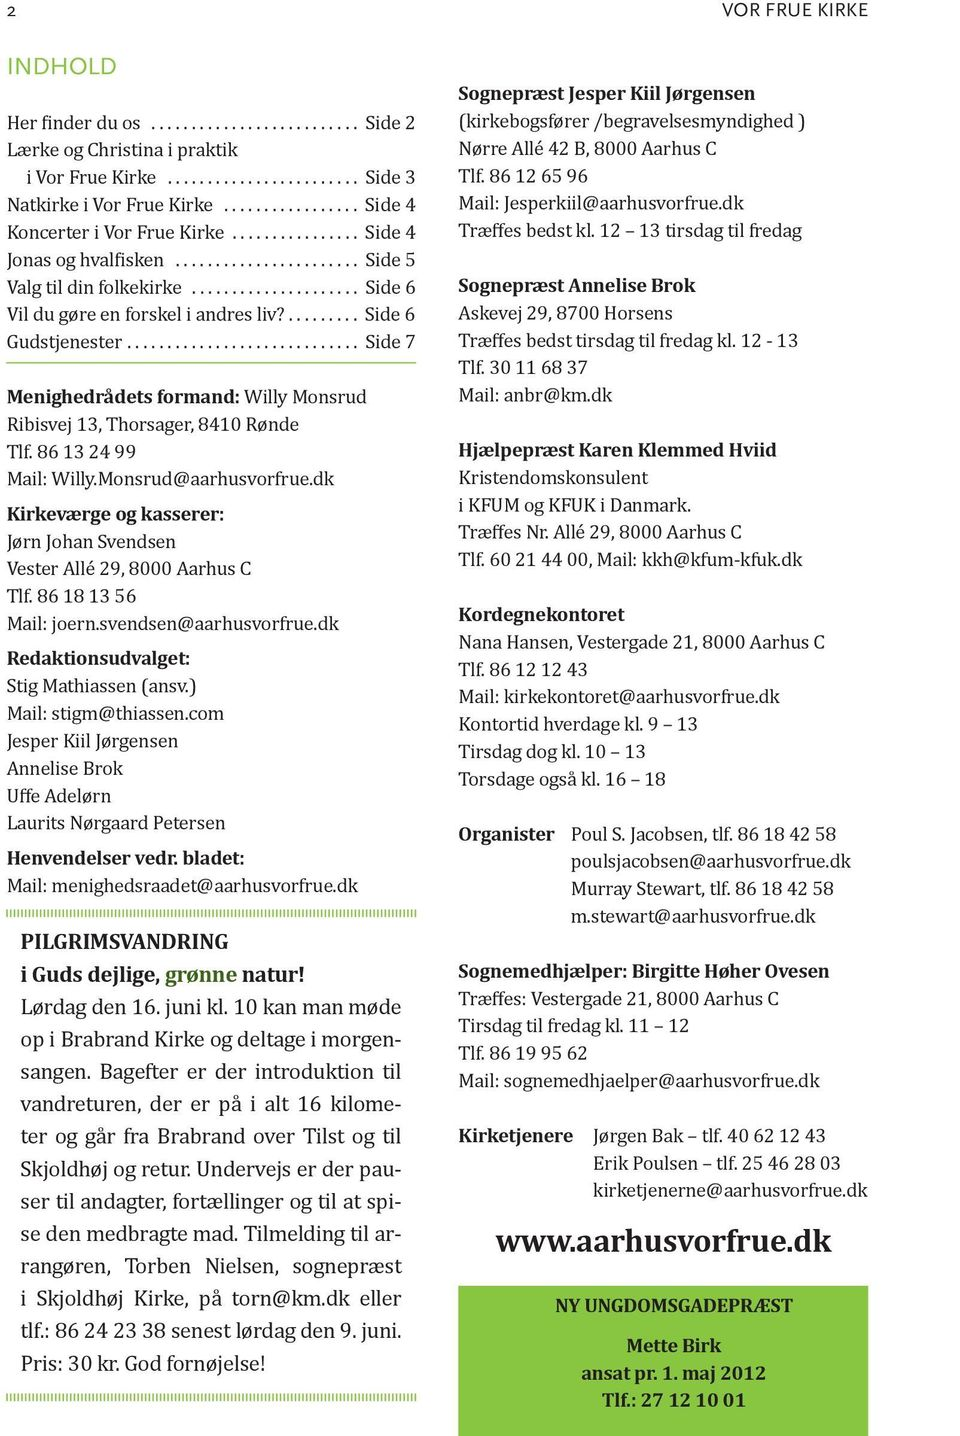 ......... Side 6 Gudstjenester............................. Side 7 Menighedrådets formand: Willy Monsrud Ribisvej 13, Thorsager, 8410 Rønde Tlf. 86 13 24 99 Mail: Willy.Monsrud@aarhusvorfrue.